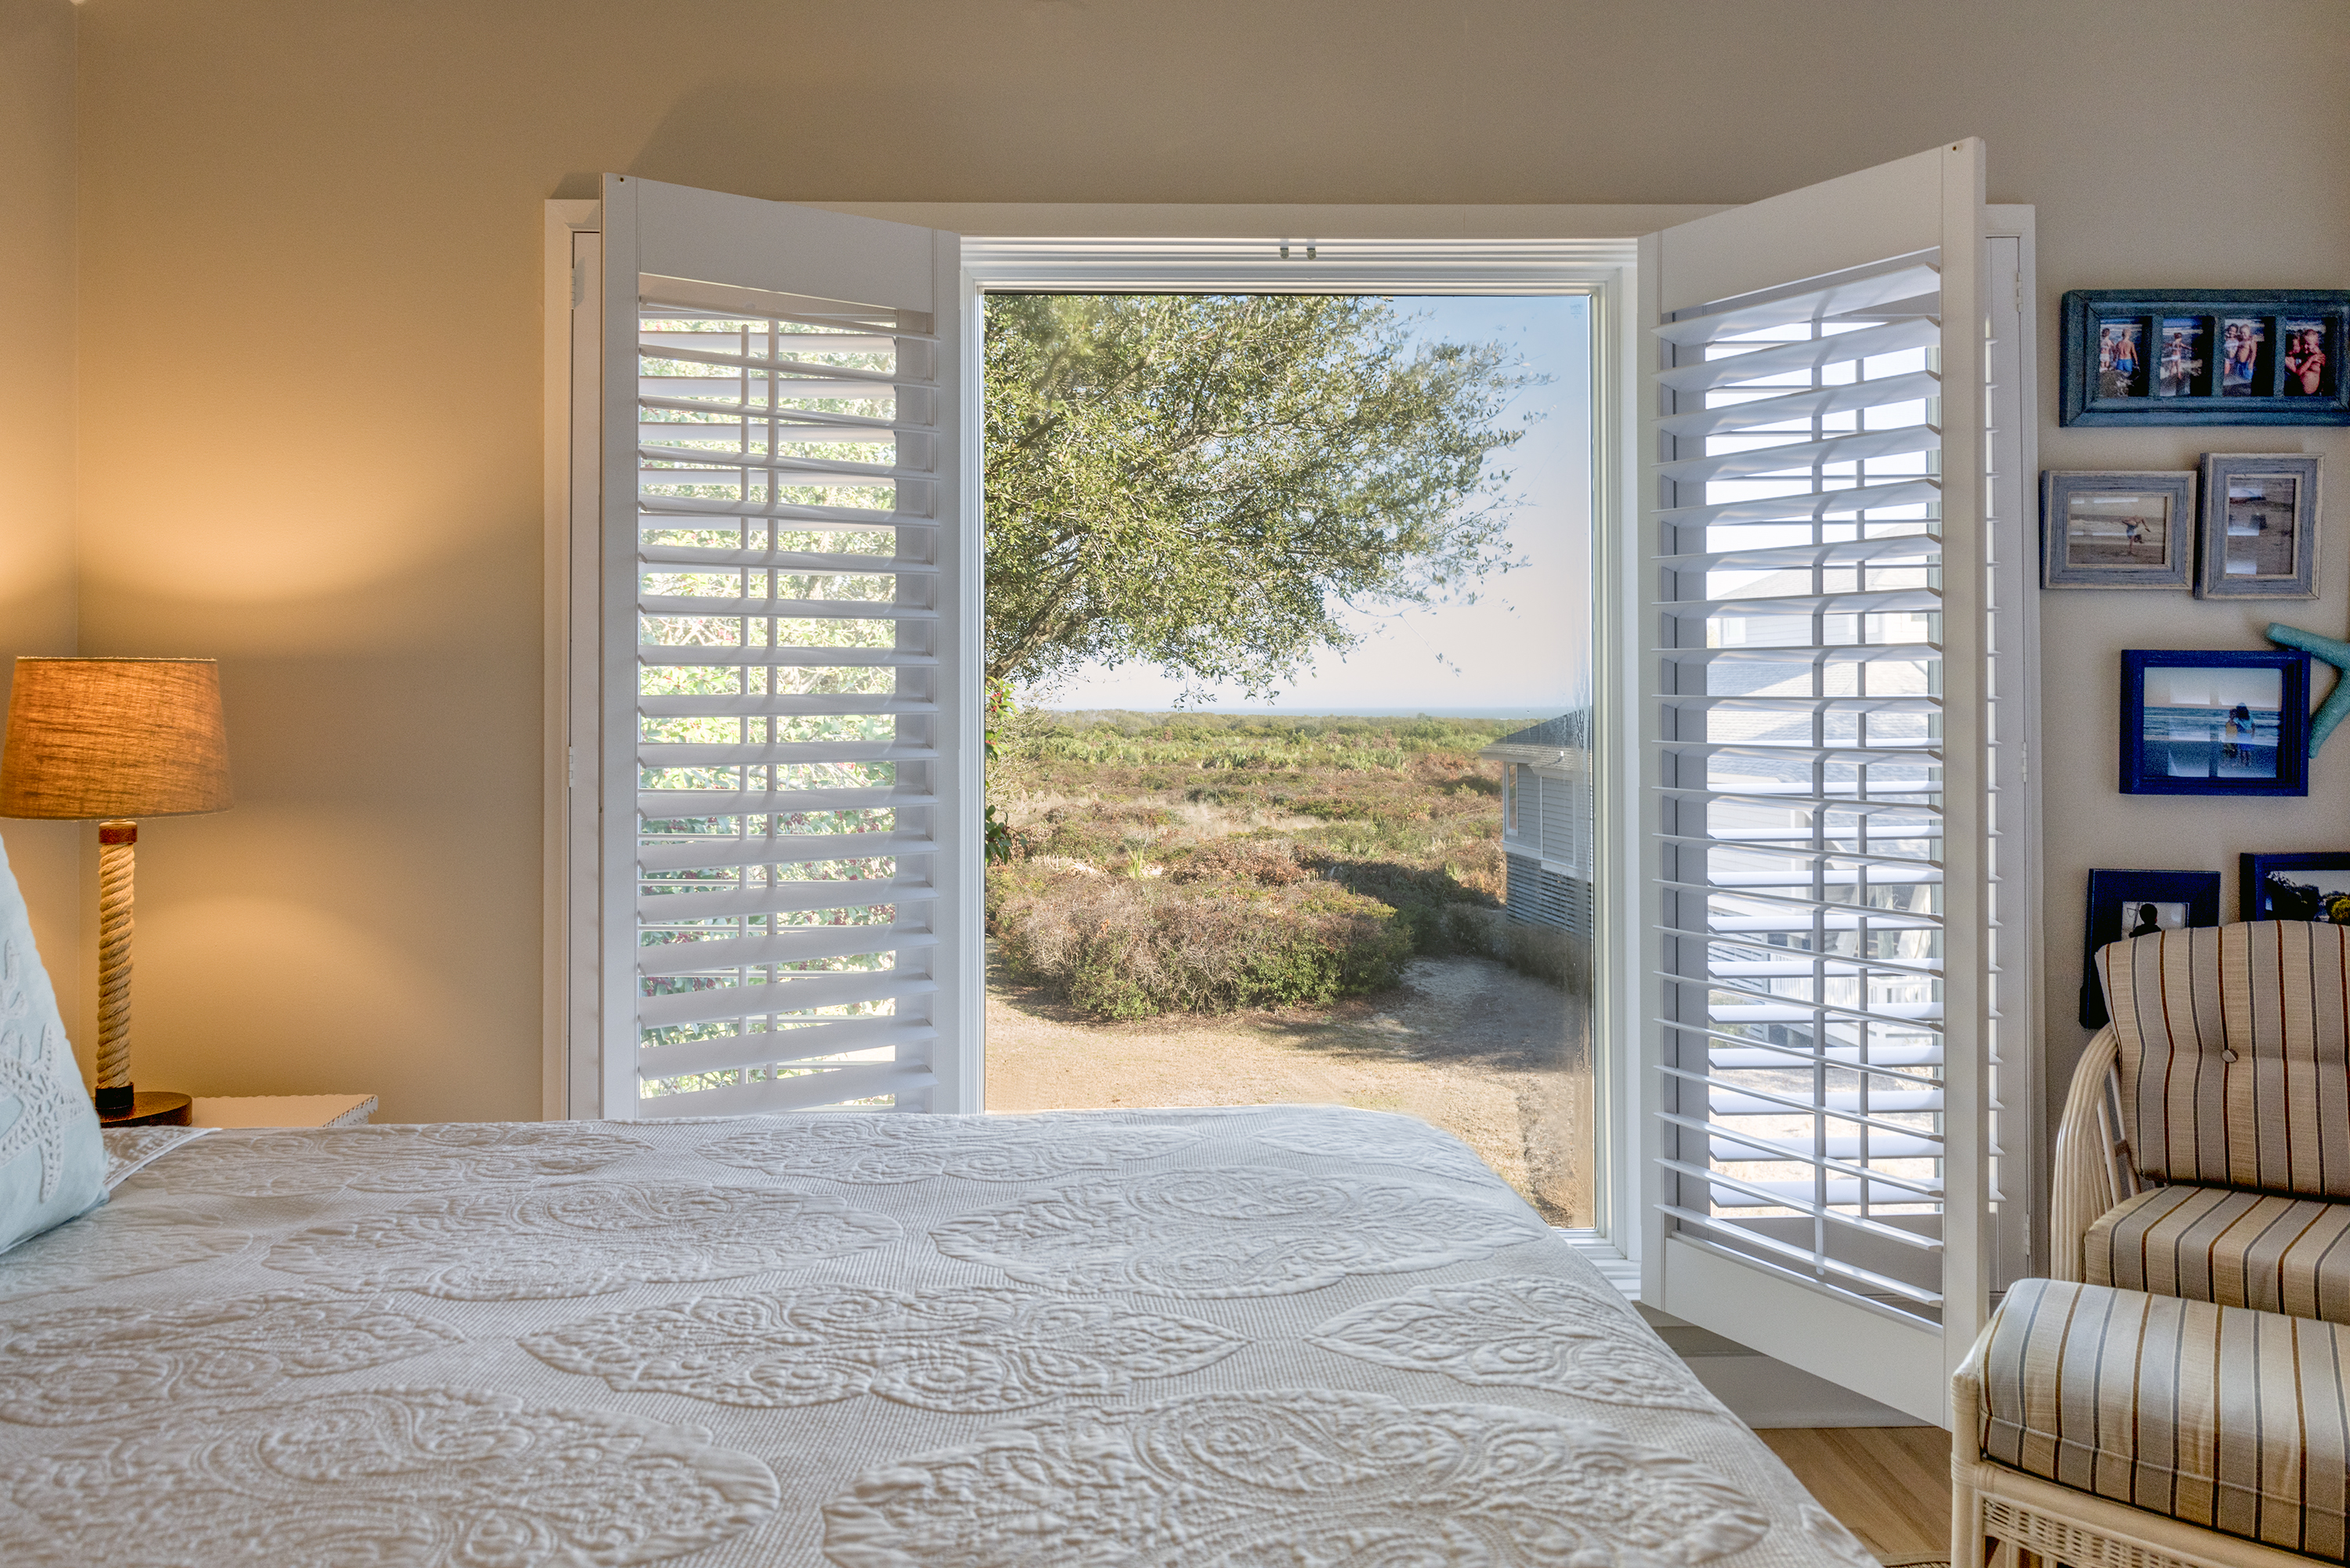 Wake up to the ocean views and fall asleep to the gentle sounds of the waves.